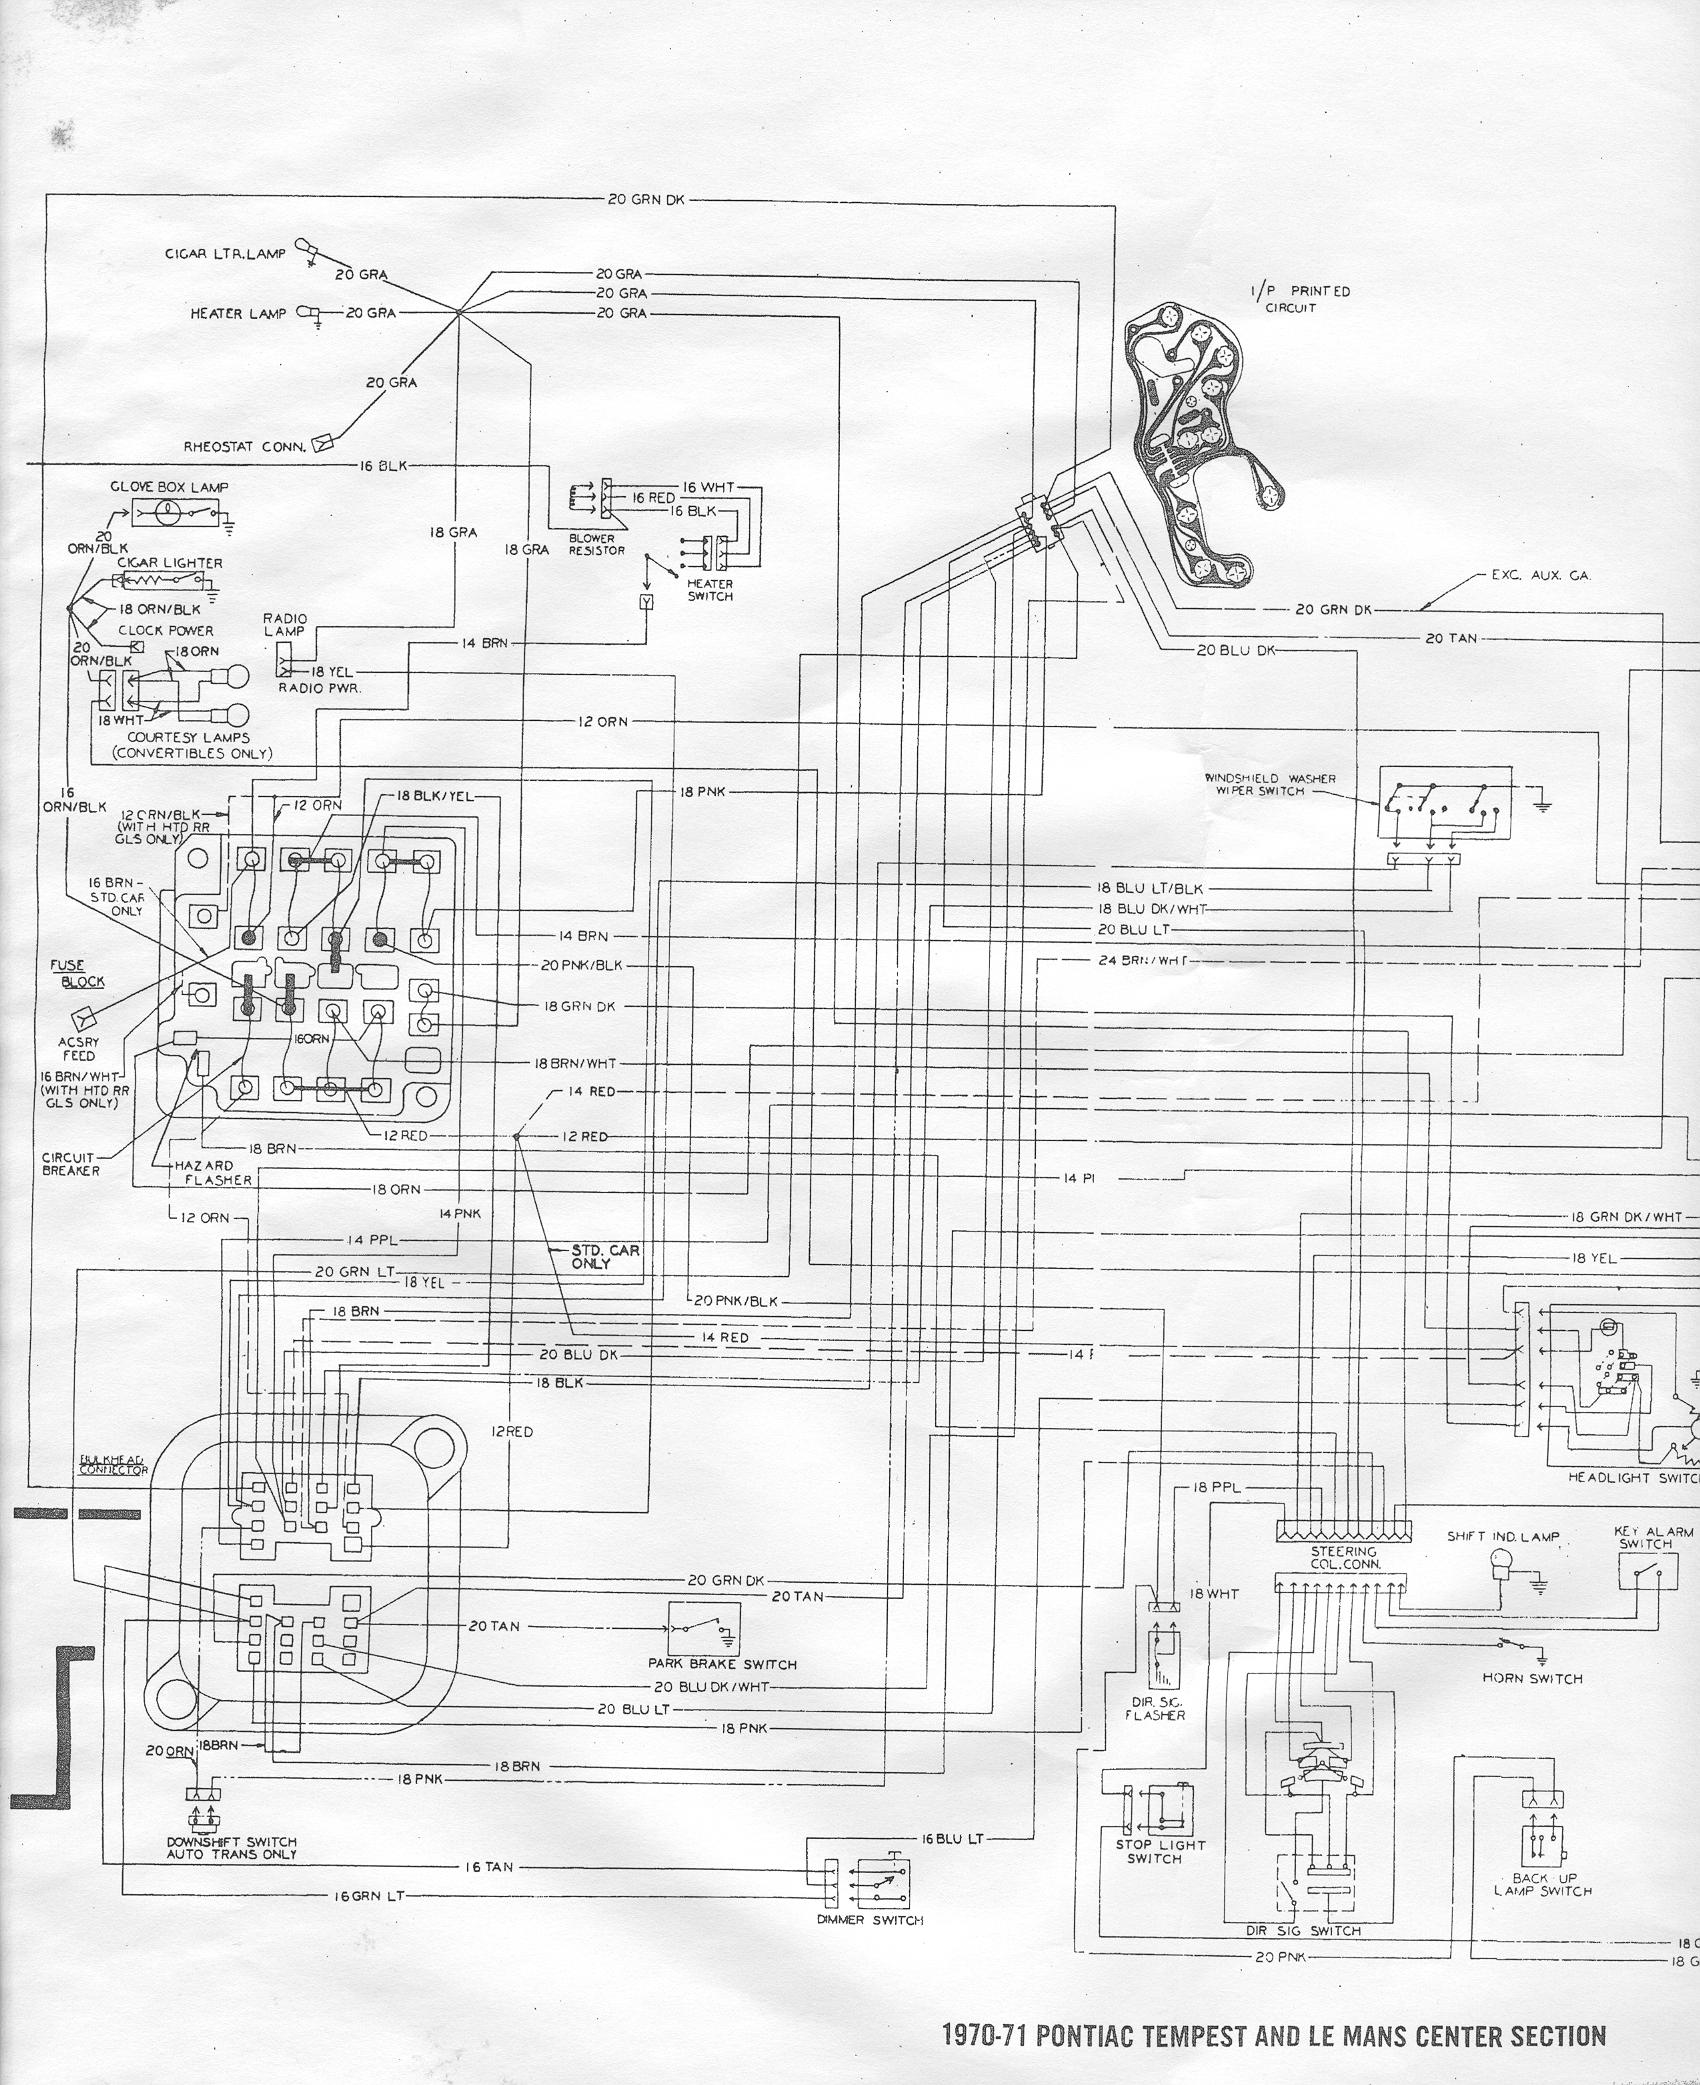 GTO Wiring Diagram scans - Pontiac GTO Forum on 1967 cougar wiring-diagram, 1972 pontiac catalina wiring-diagram, 1966 gto rear suspension, 1966 gto exhaust system, 1966 gto body parts, 71 le mans wiring-diagram, 1966 gto radio wiring, 1966 gto 1967 gto, 1967 pontiac tempest wiring-diagram, 1971 chevy c10 wiring-diagram,